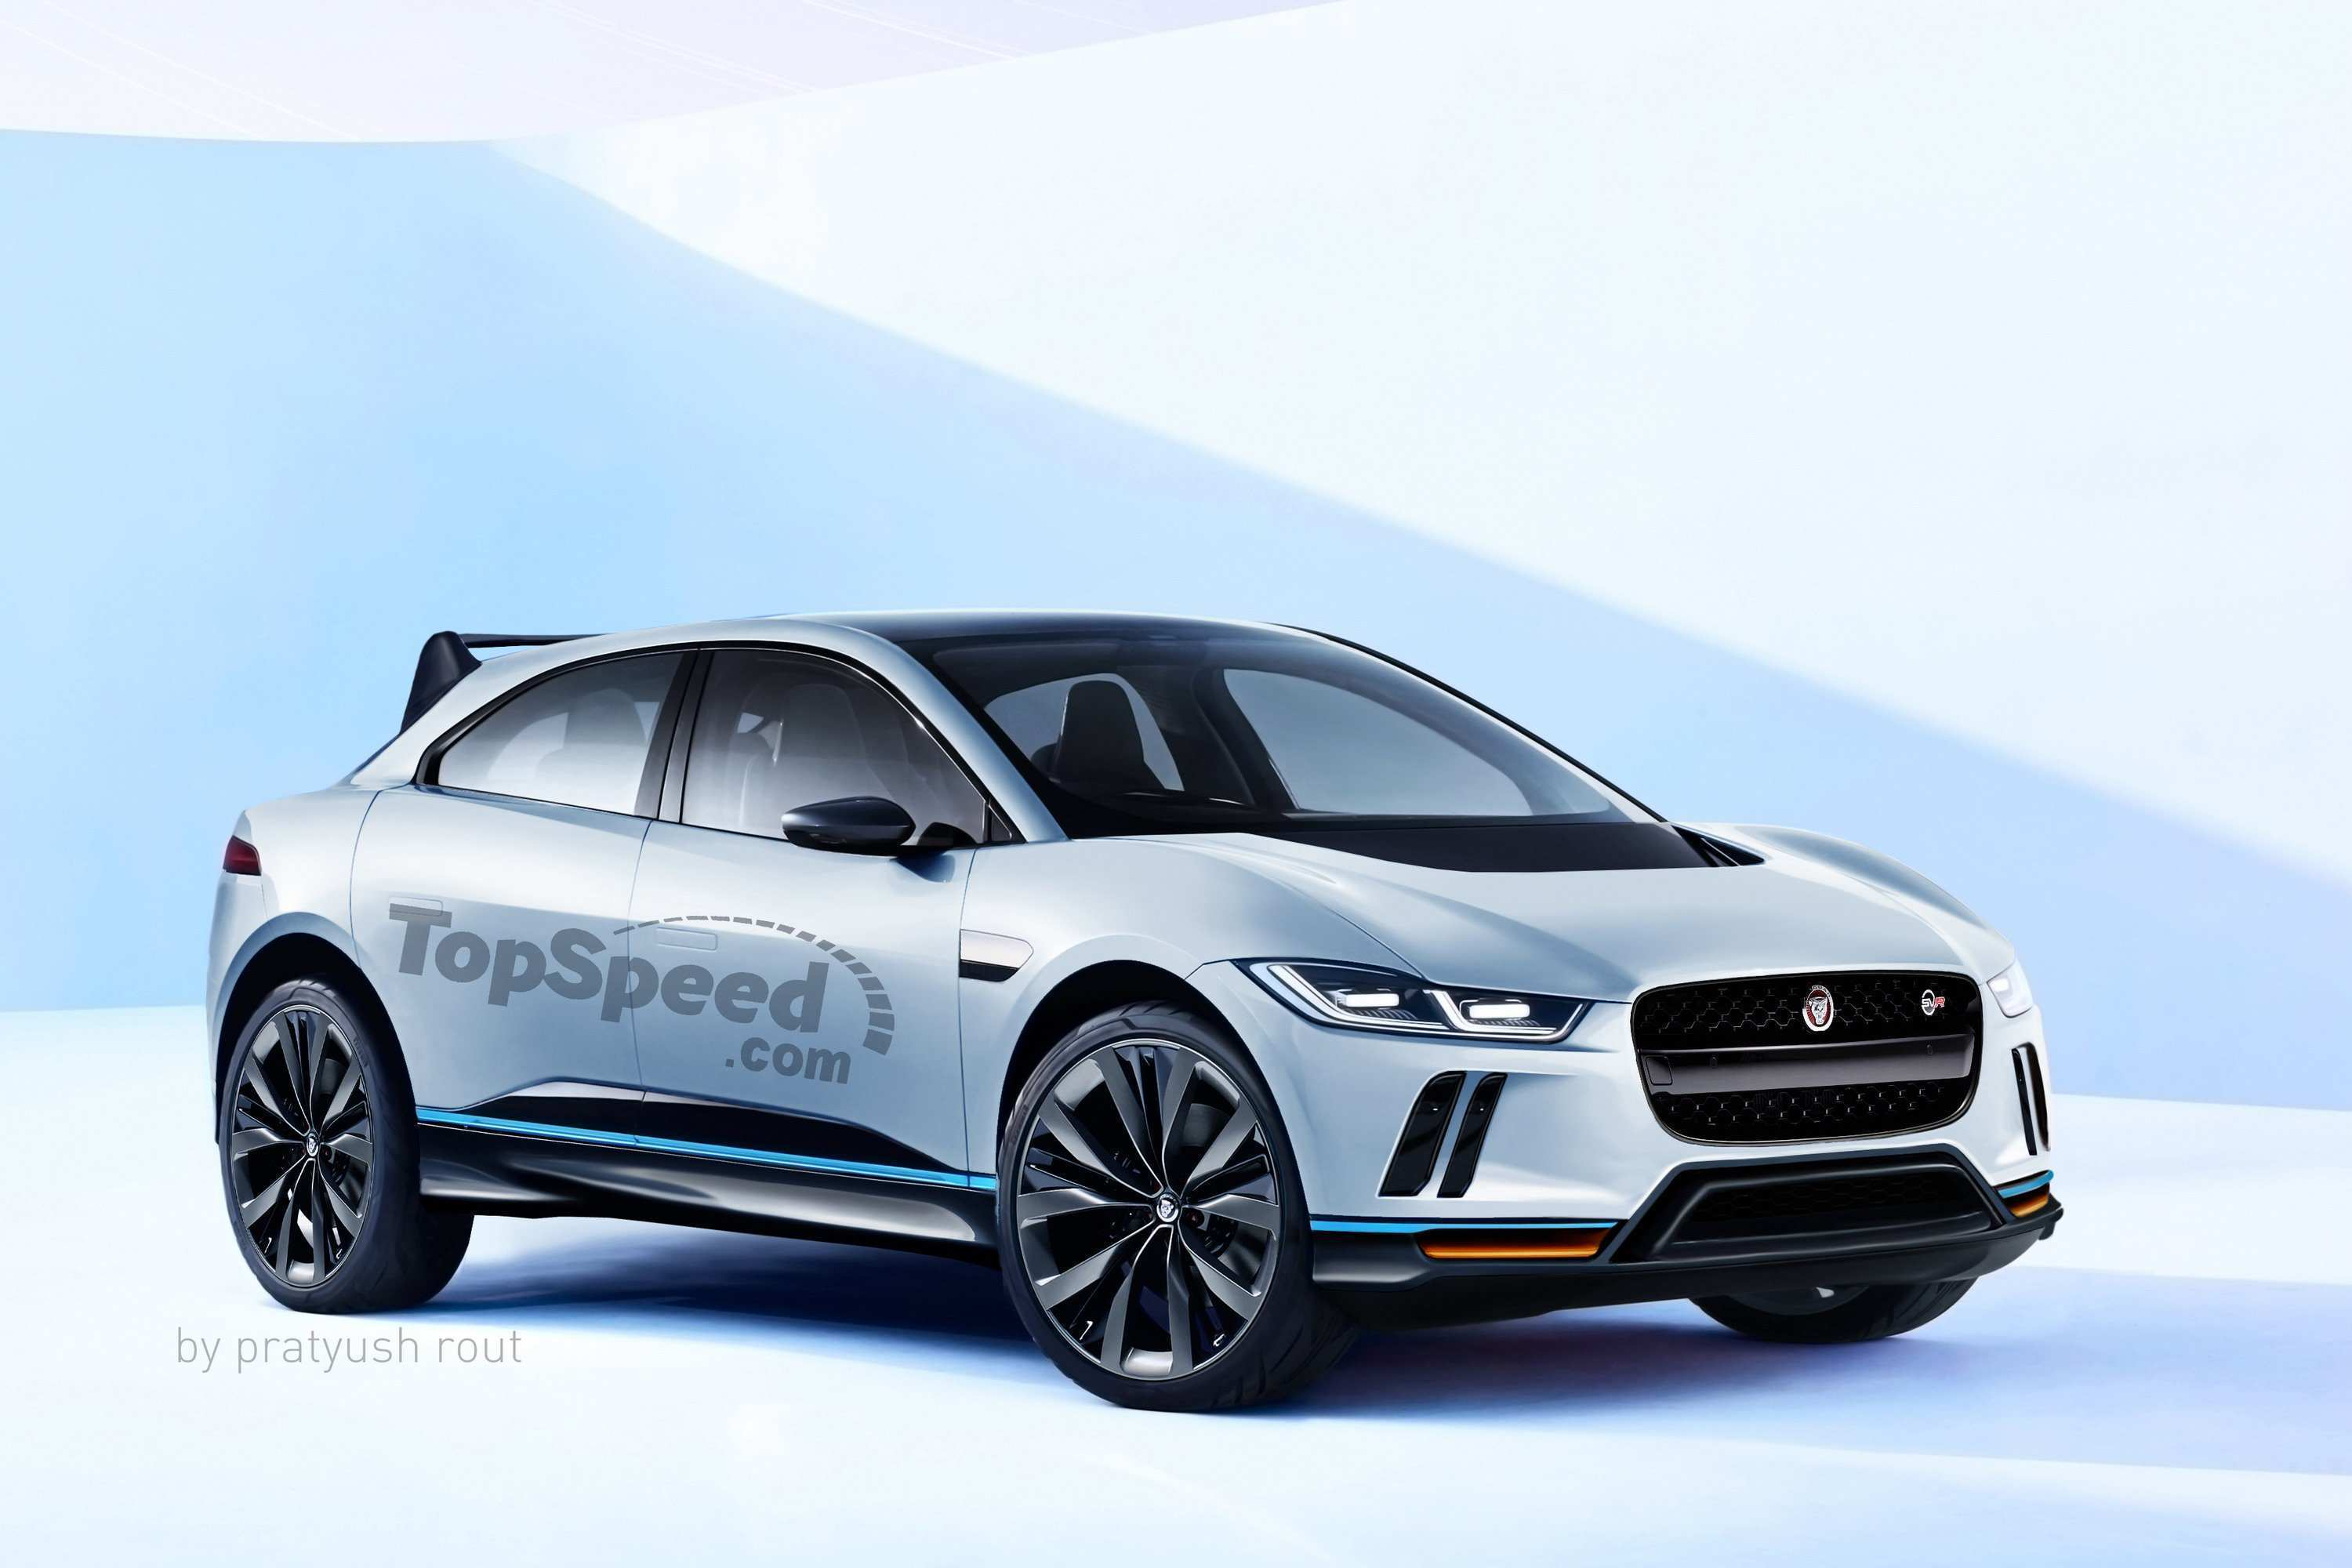 79 The 2020 Jaguar I Pace Electric Price and Review with 2020 Jaguar I Pace Electric